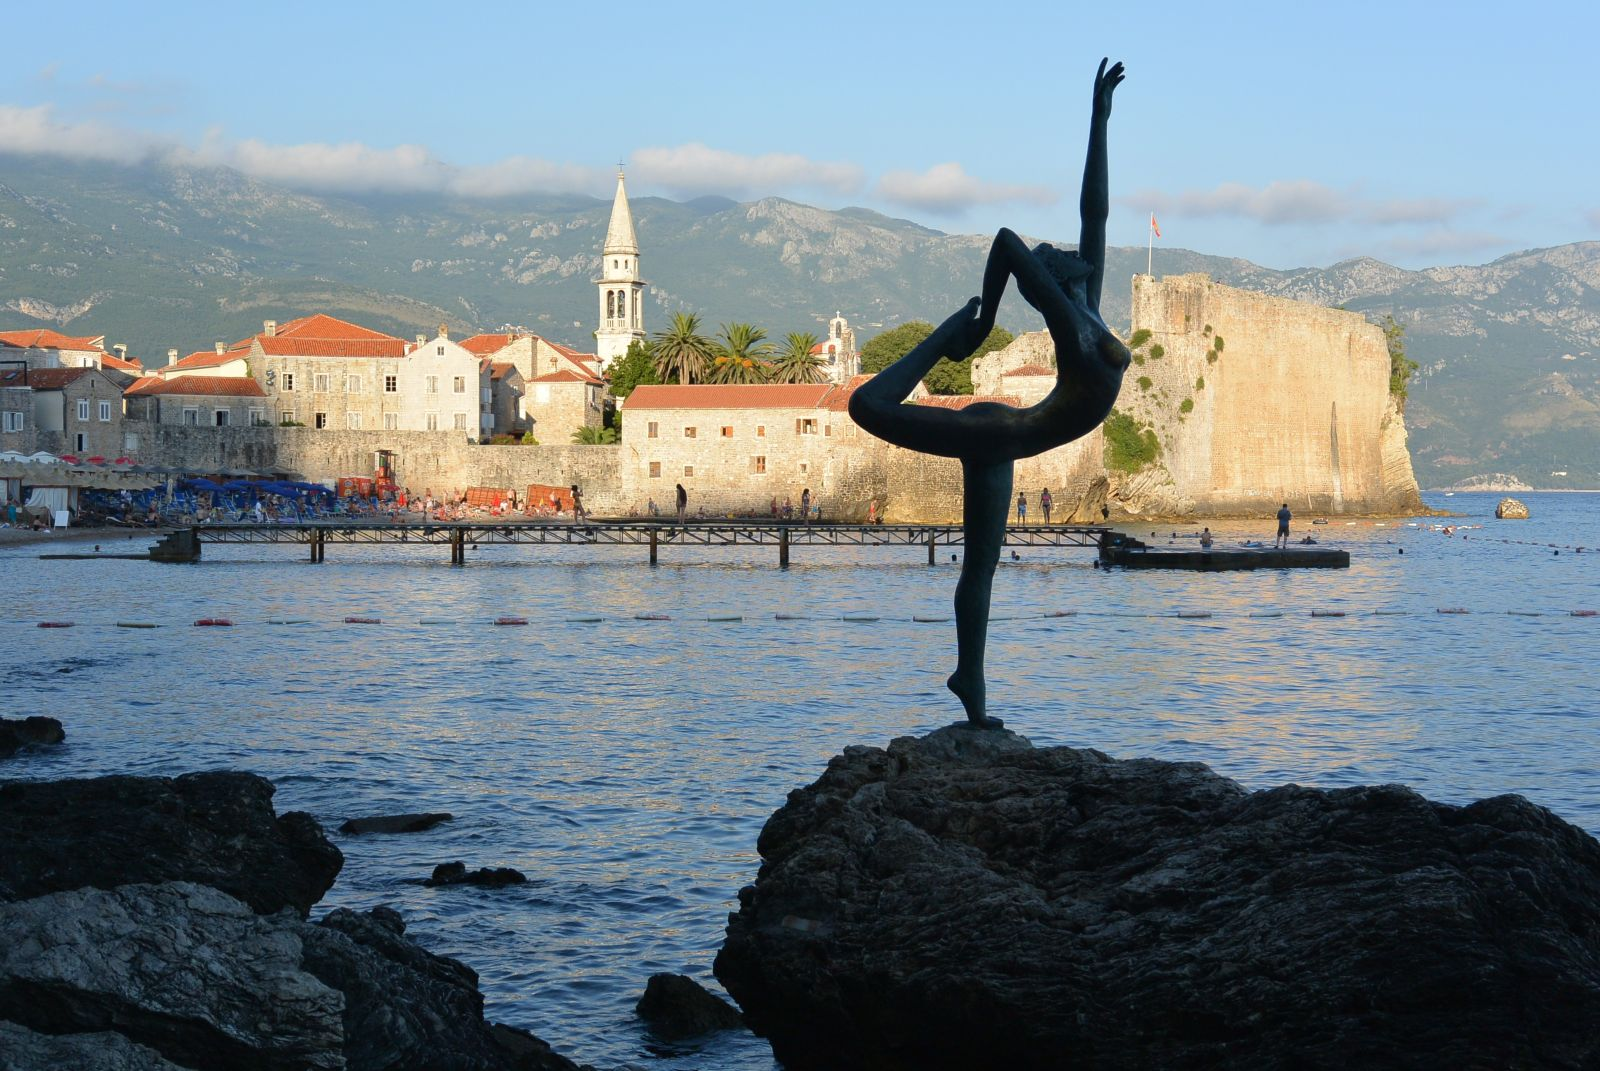 -images-excursions-pearls-of-montenegro--montenegro-day-tour-from-dubrovnik10.jpg